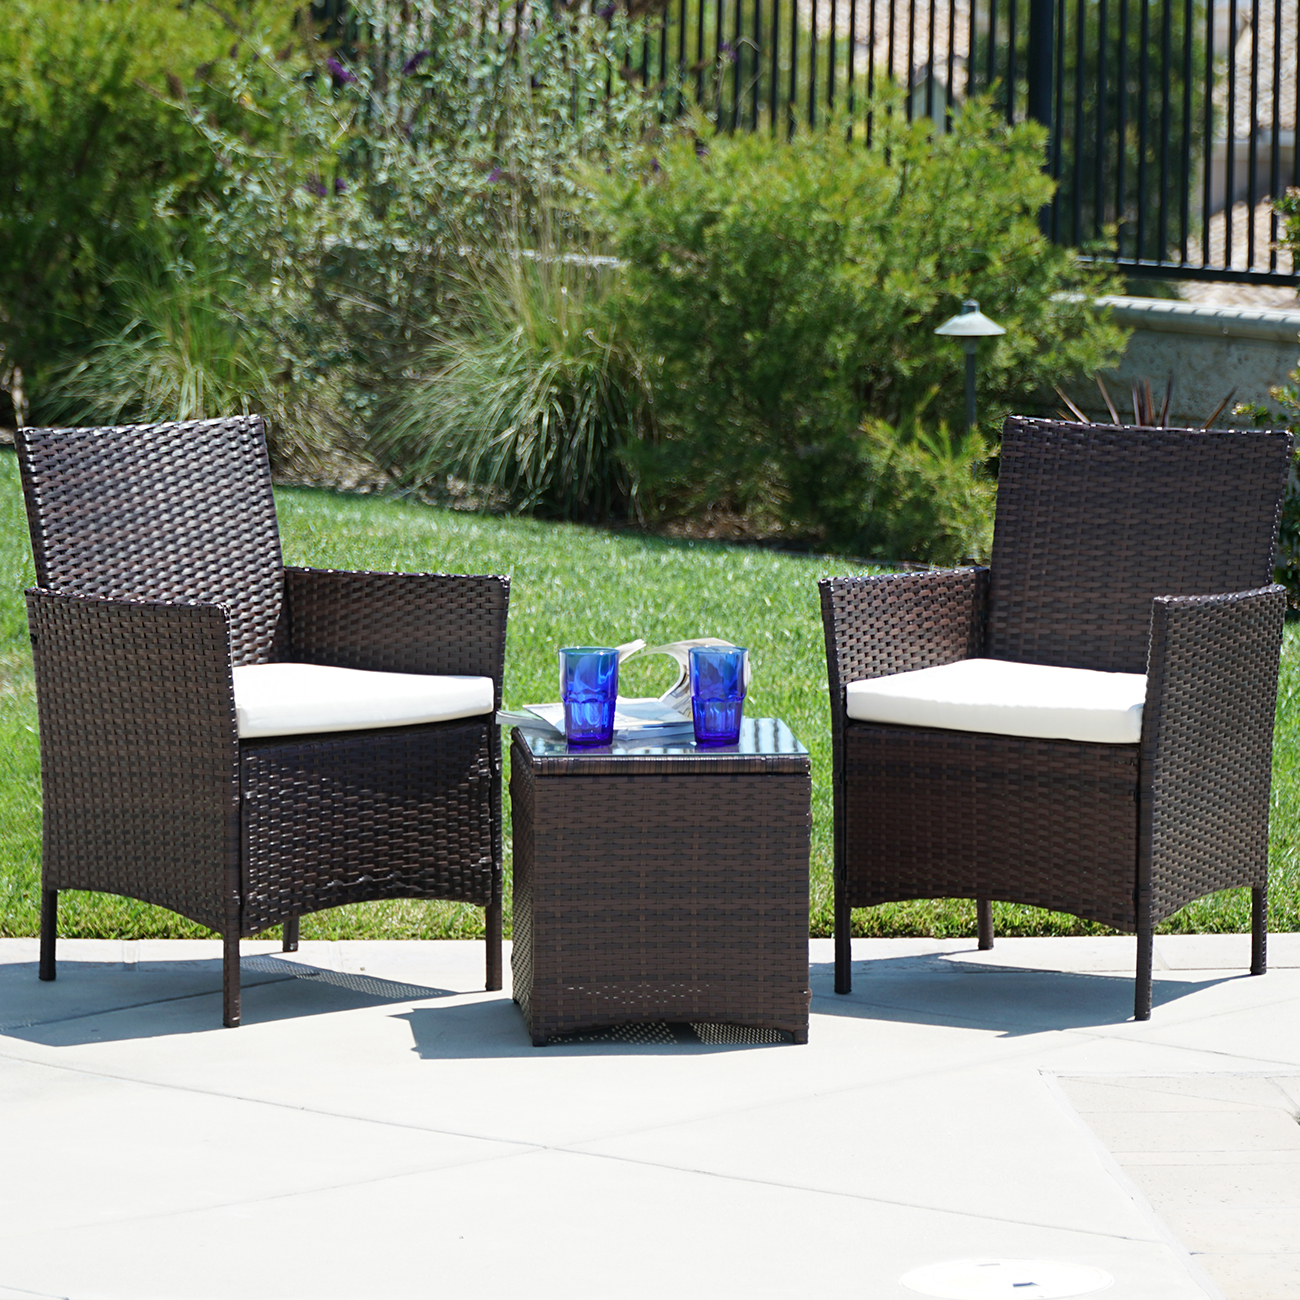 Belleze 3pc patio outdoor rattan set coffee table chairs for Best deals on patio furniture sets